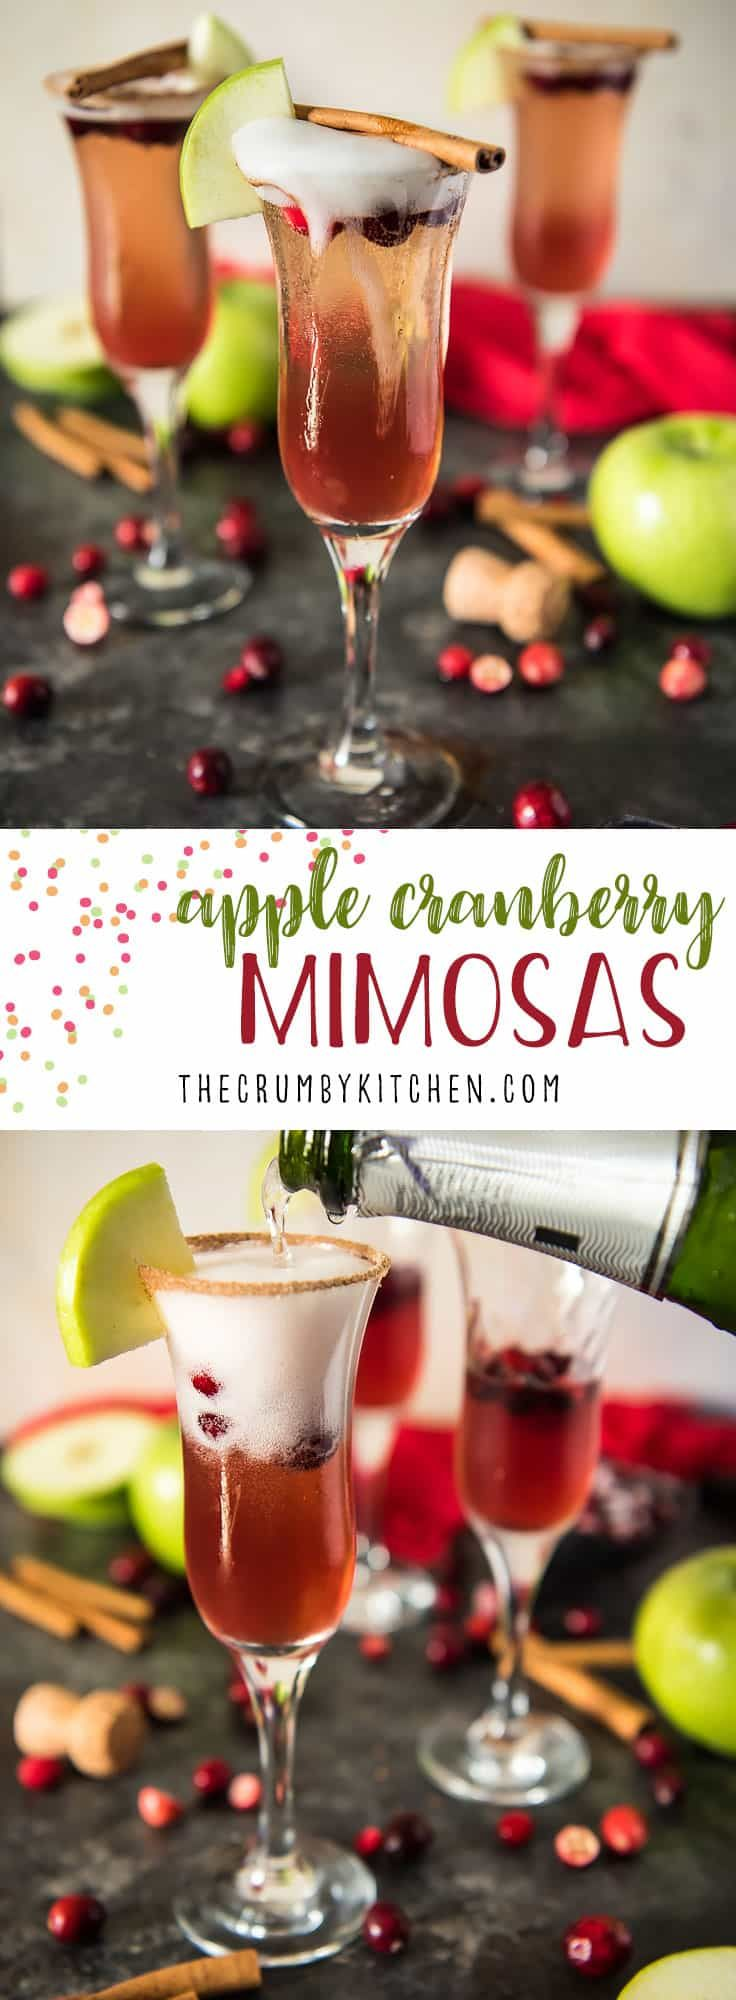 These fun and festive 3-ingredient Apple Cranberry Mimosas will make any holiday breakfast extra special - just don't forget the cinnamon-sugar rim! via @crumbykitchen